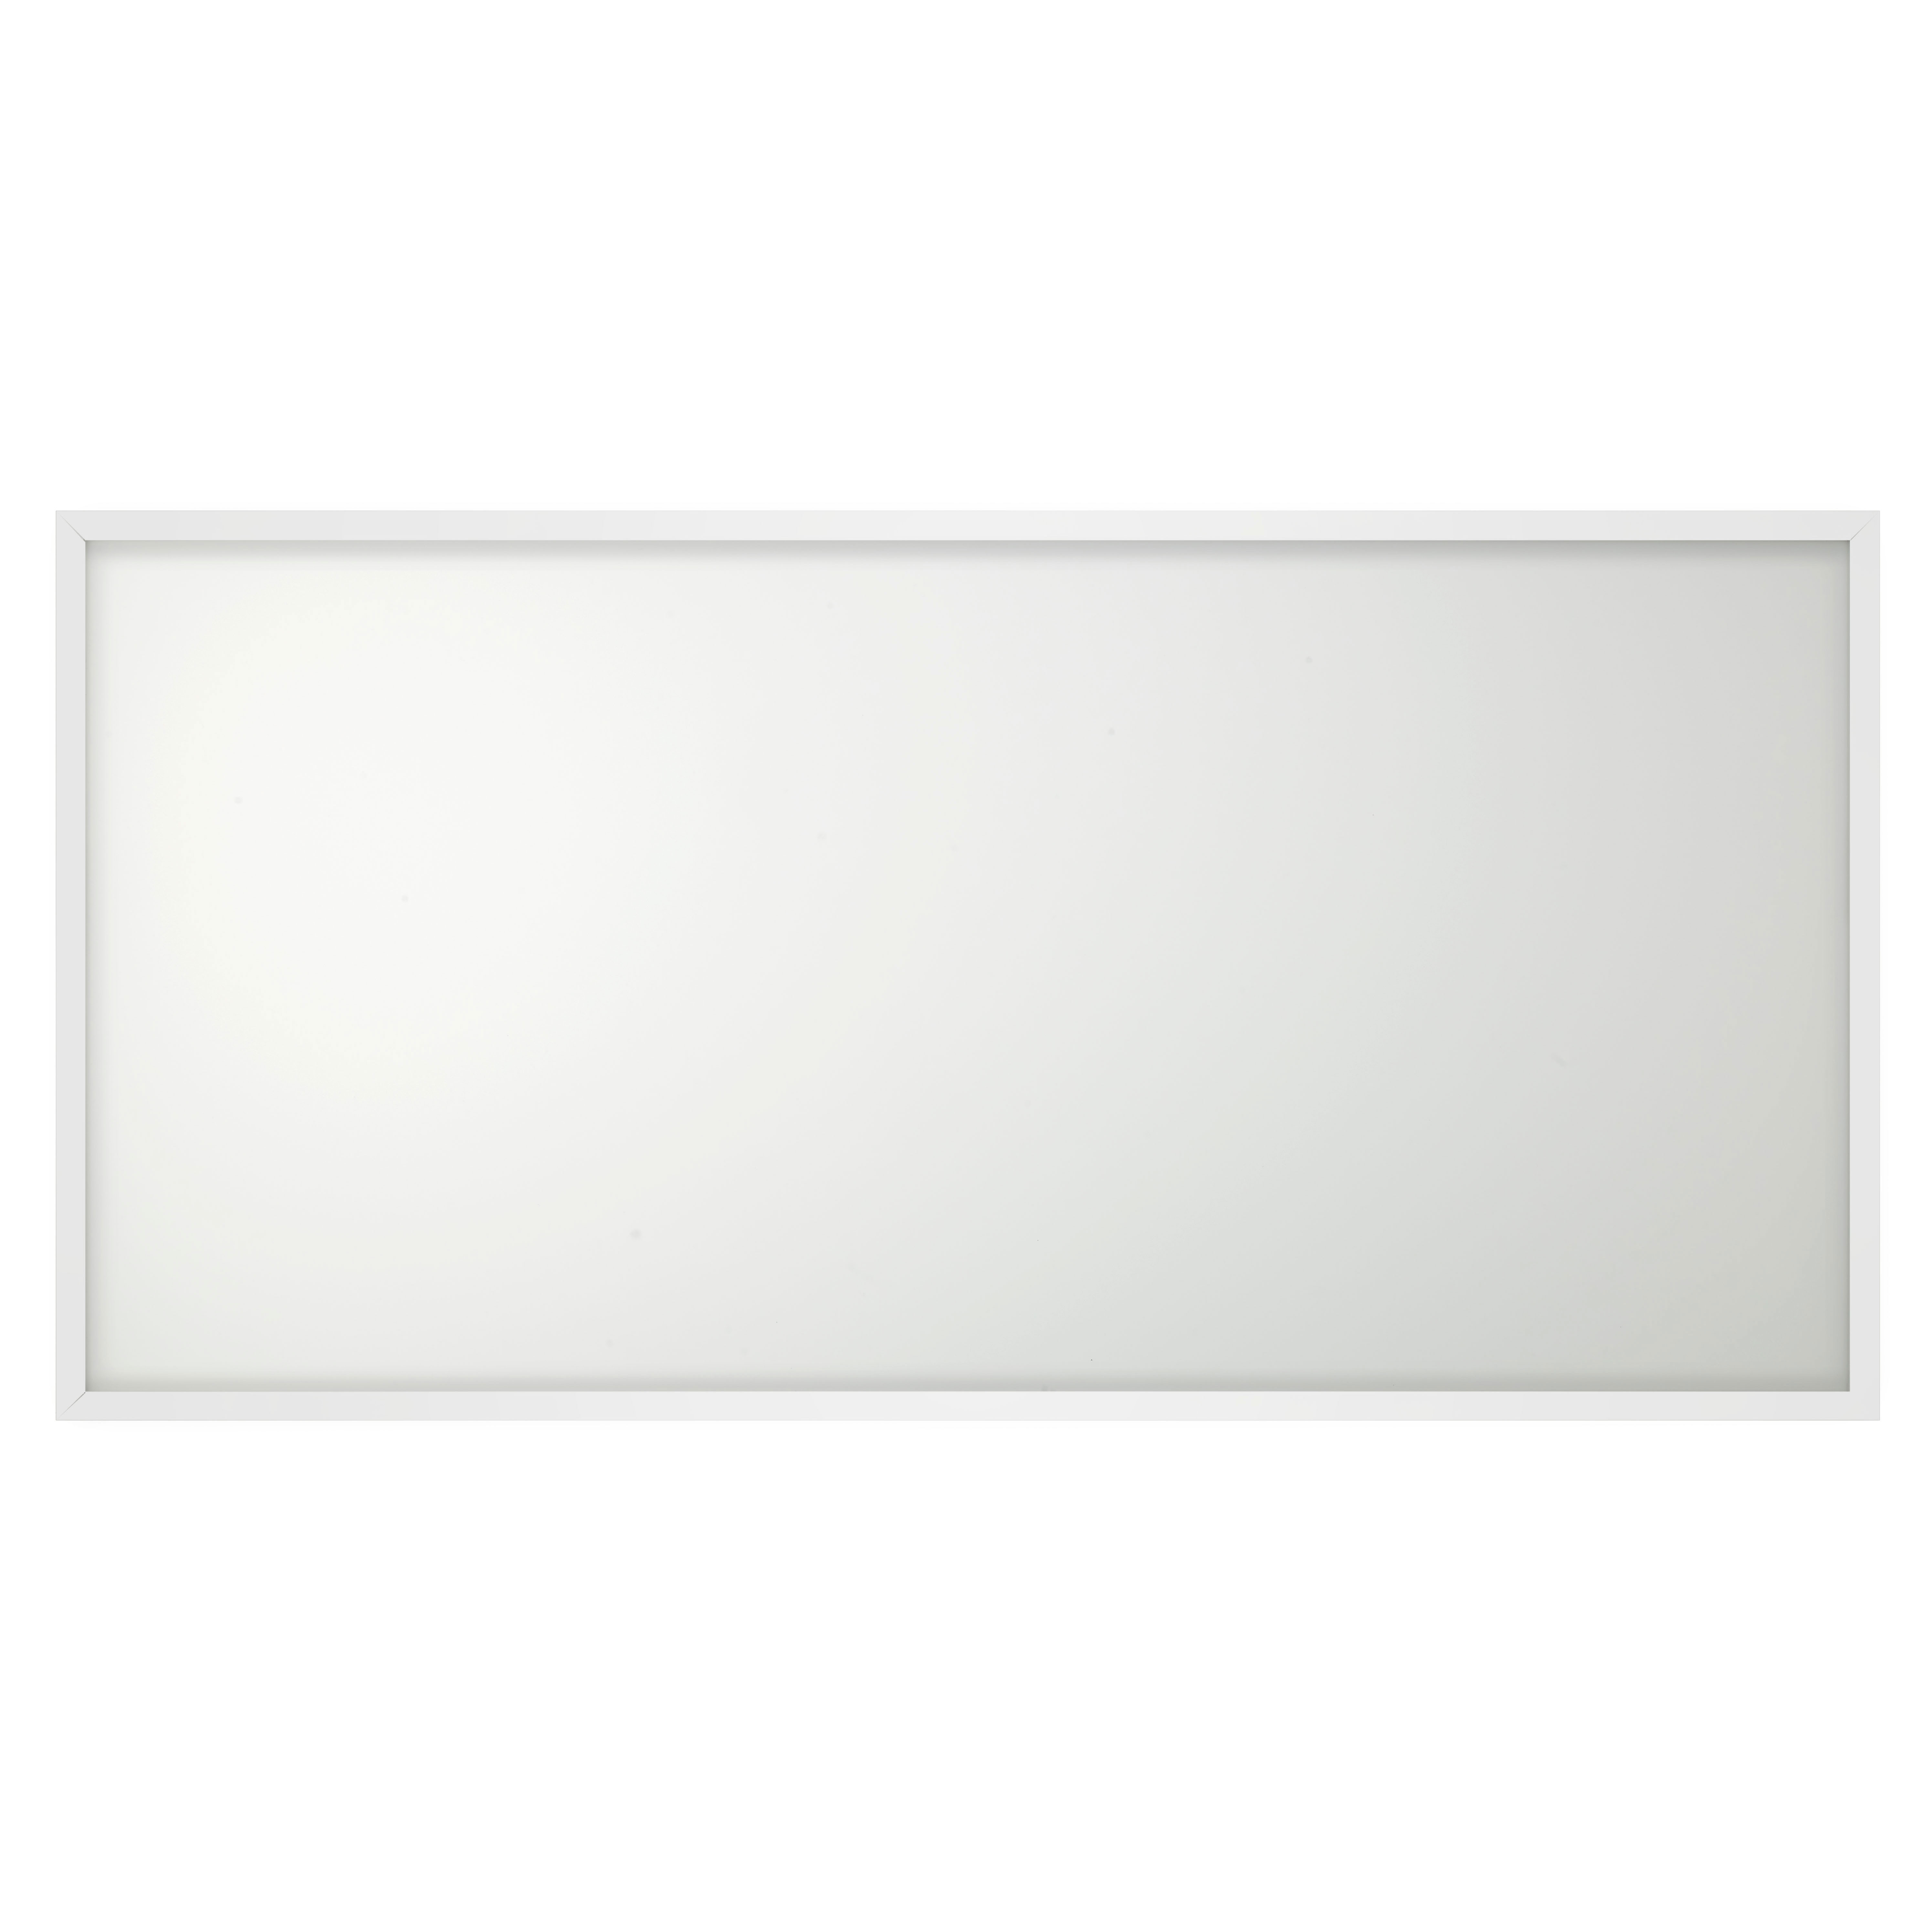 BL LED PANEL 1200X600 50W 840 ND 50K NON DIMMING